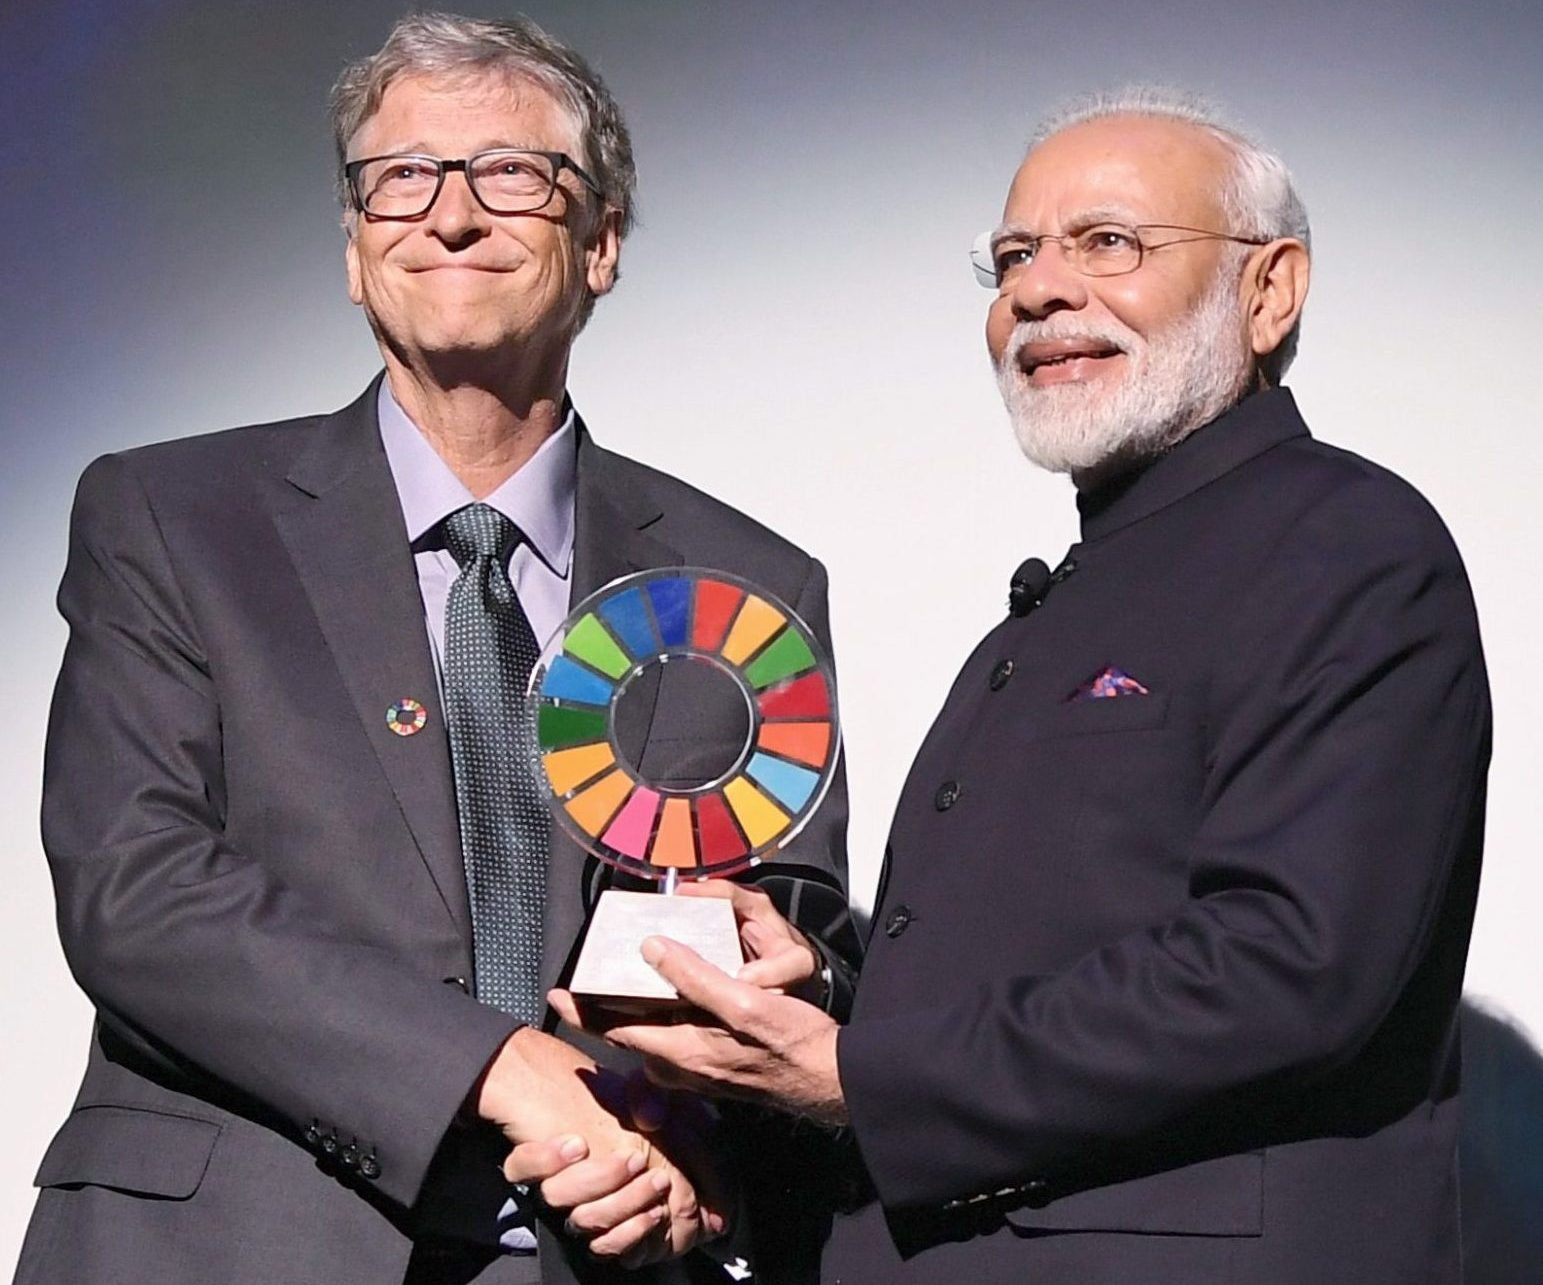 PM receives 'Global Goal Keeper Award' for Swachh Bharat Abhiyan PM receives 'Global Goal Keeper Award' for Swachh Bharat Abhiyan